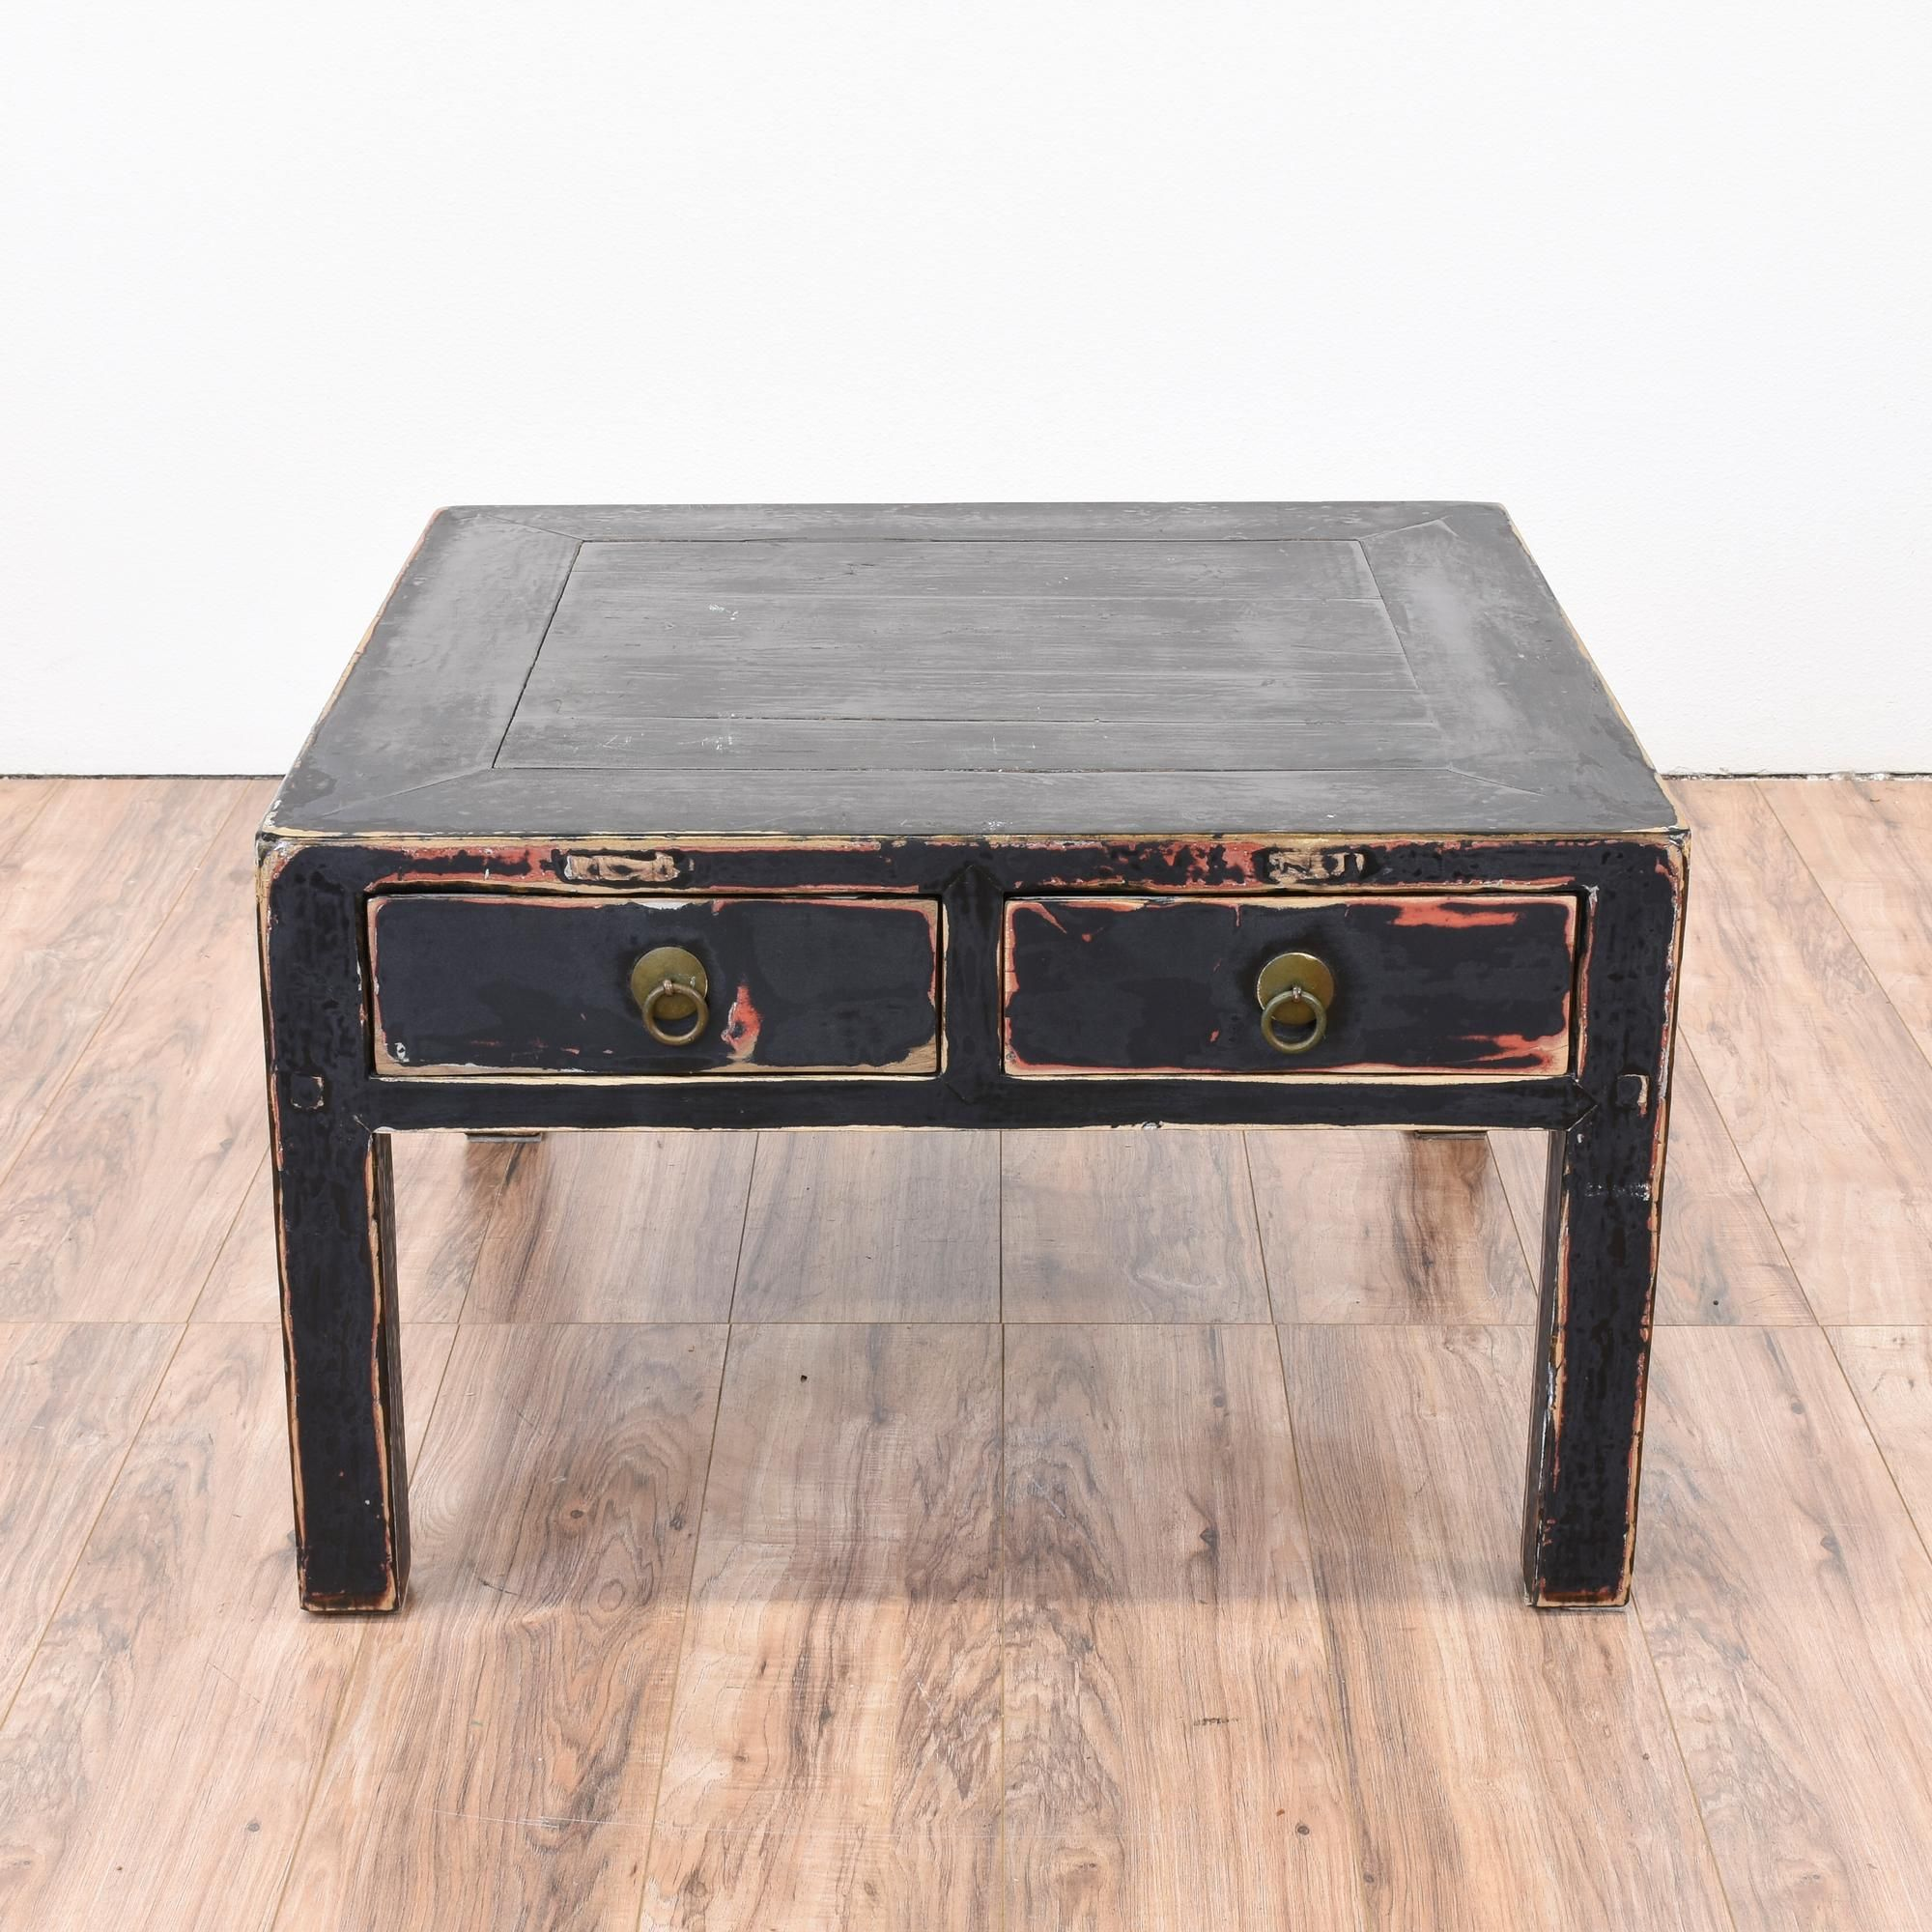 This Shabby Chic Coffee Table Is Featured In A Solid Wood Painted Distressed Black Chalk Paint With Hints Of Red Square Great